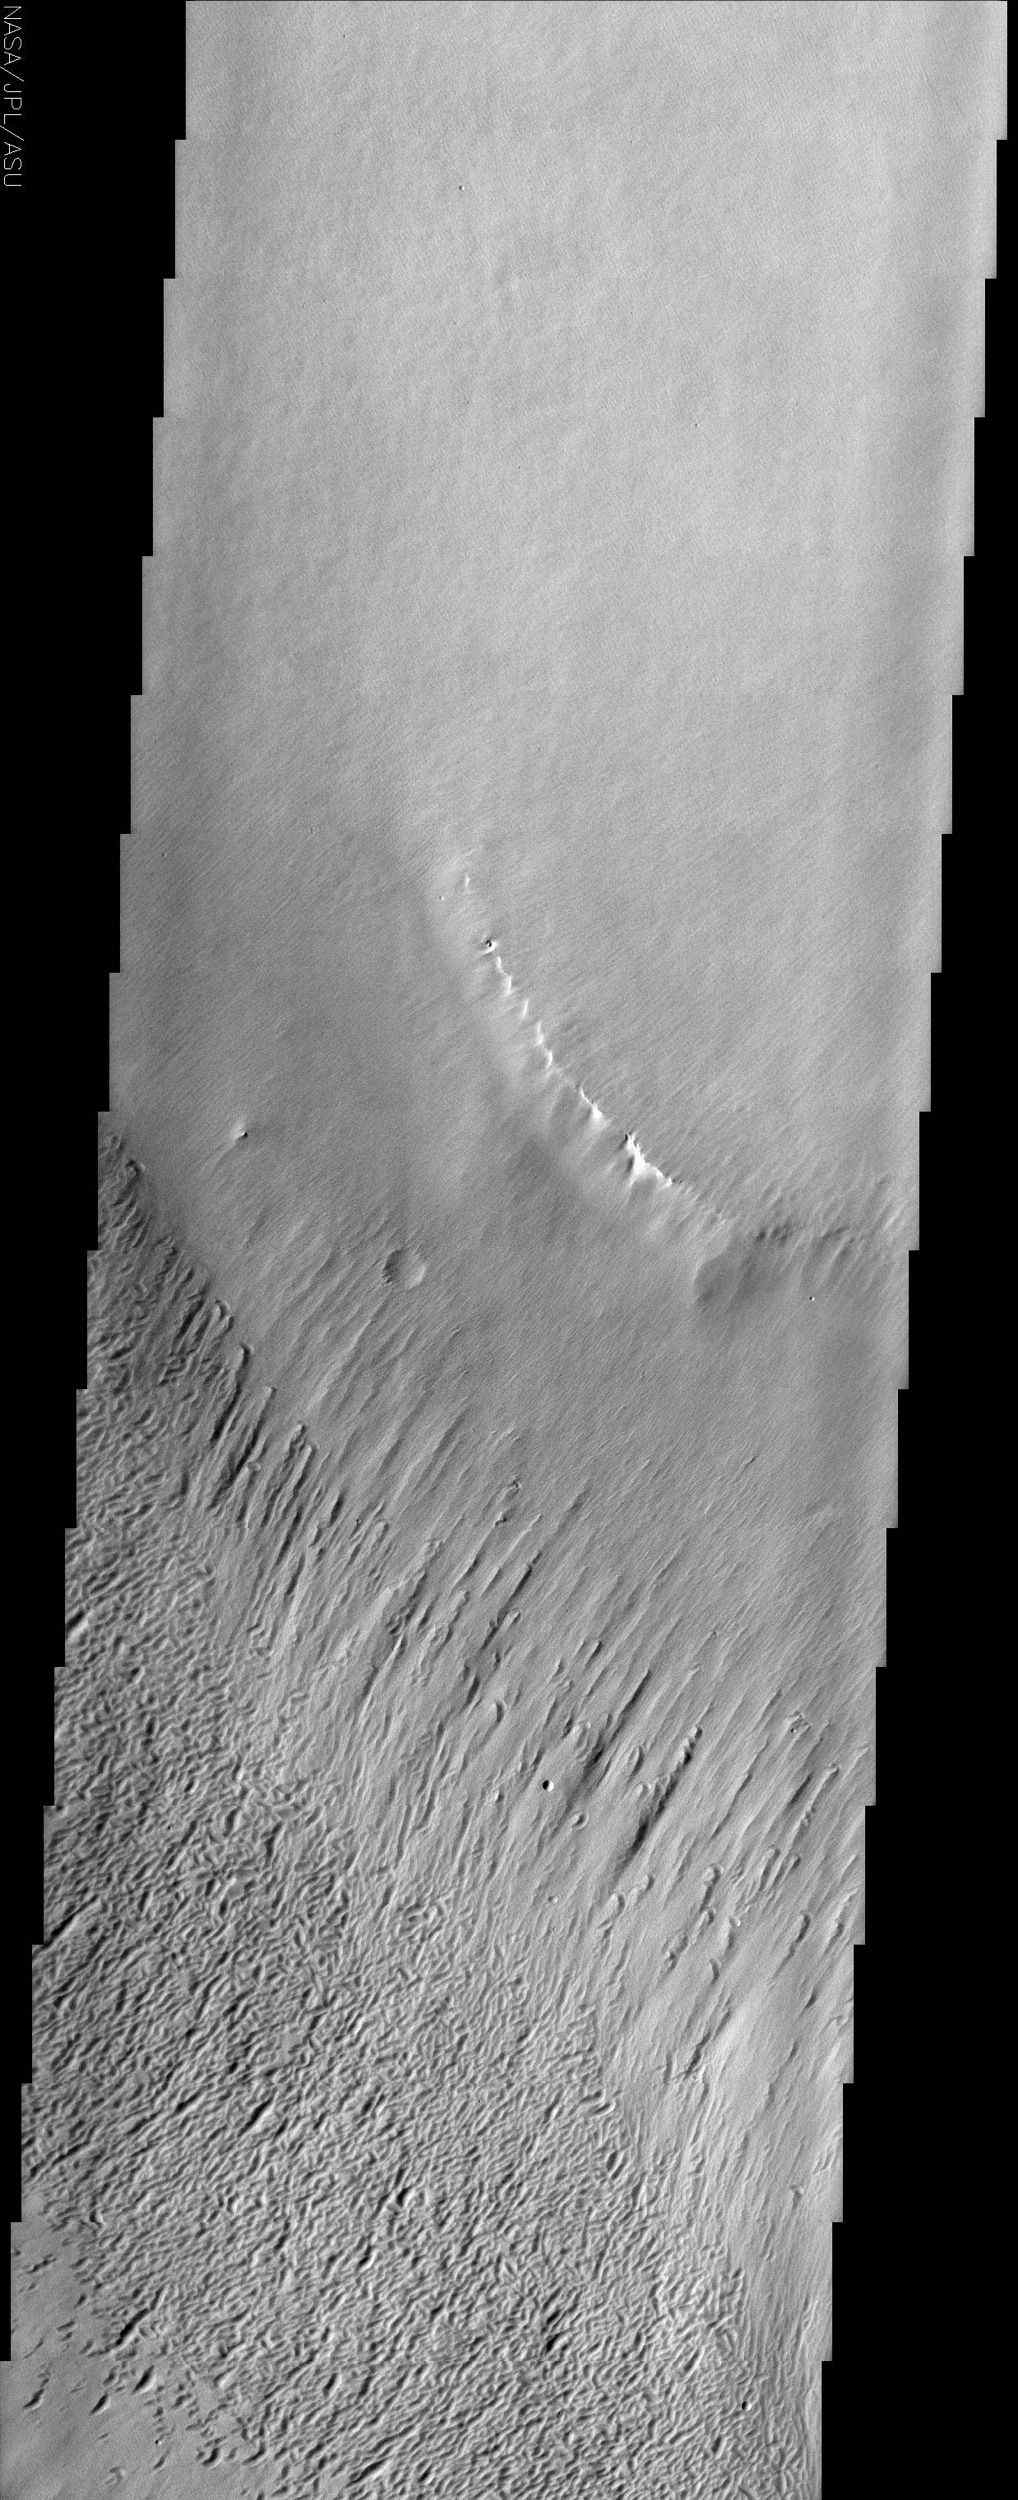 This image from NASA's Mars Odyssey covers a portion of the Medusa Fossae formation, near the equator of Mars. The most characteristic feature of the Medusa Fossae formation is the abundance of 'yardangs,' which are erosional landforms carved by wind.